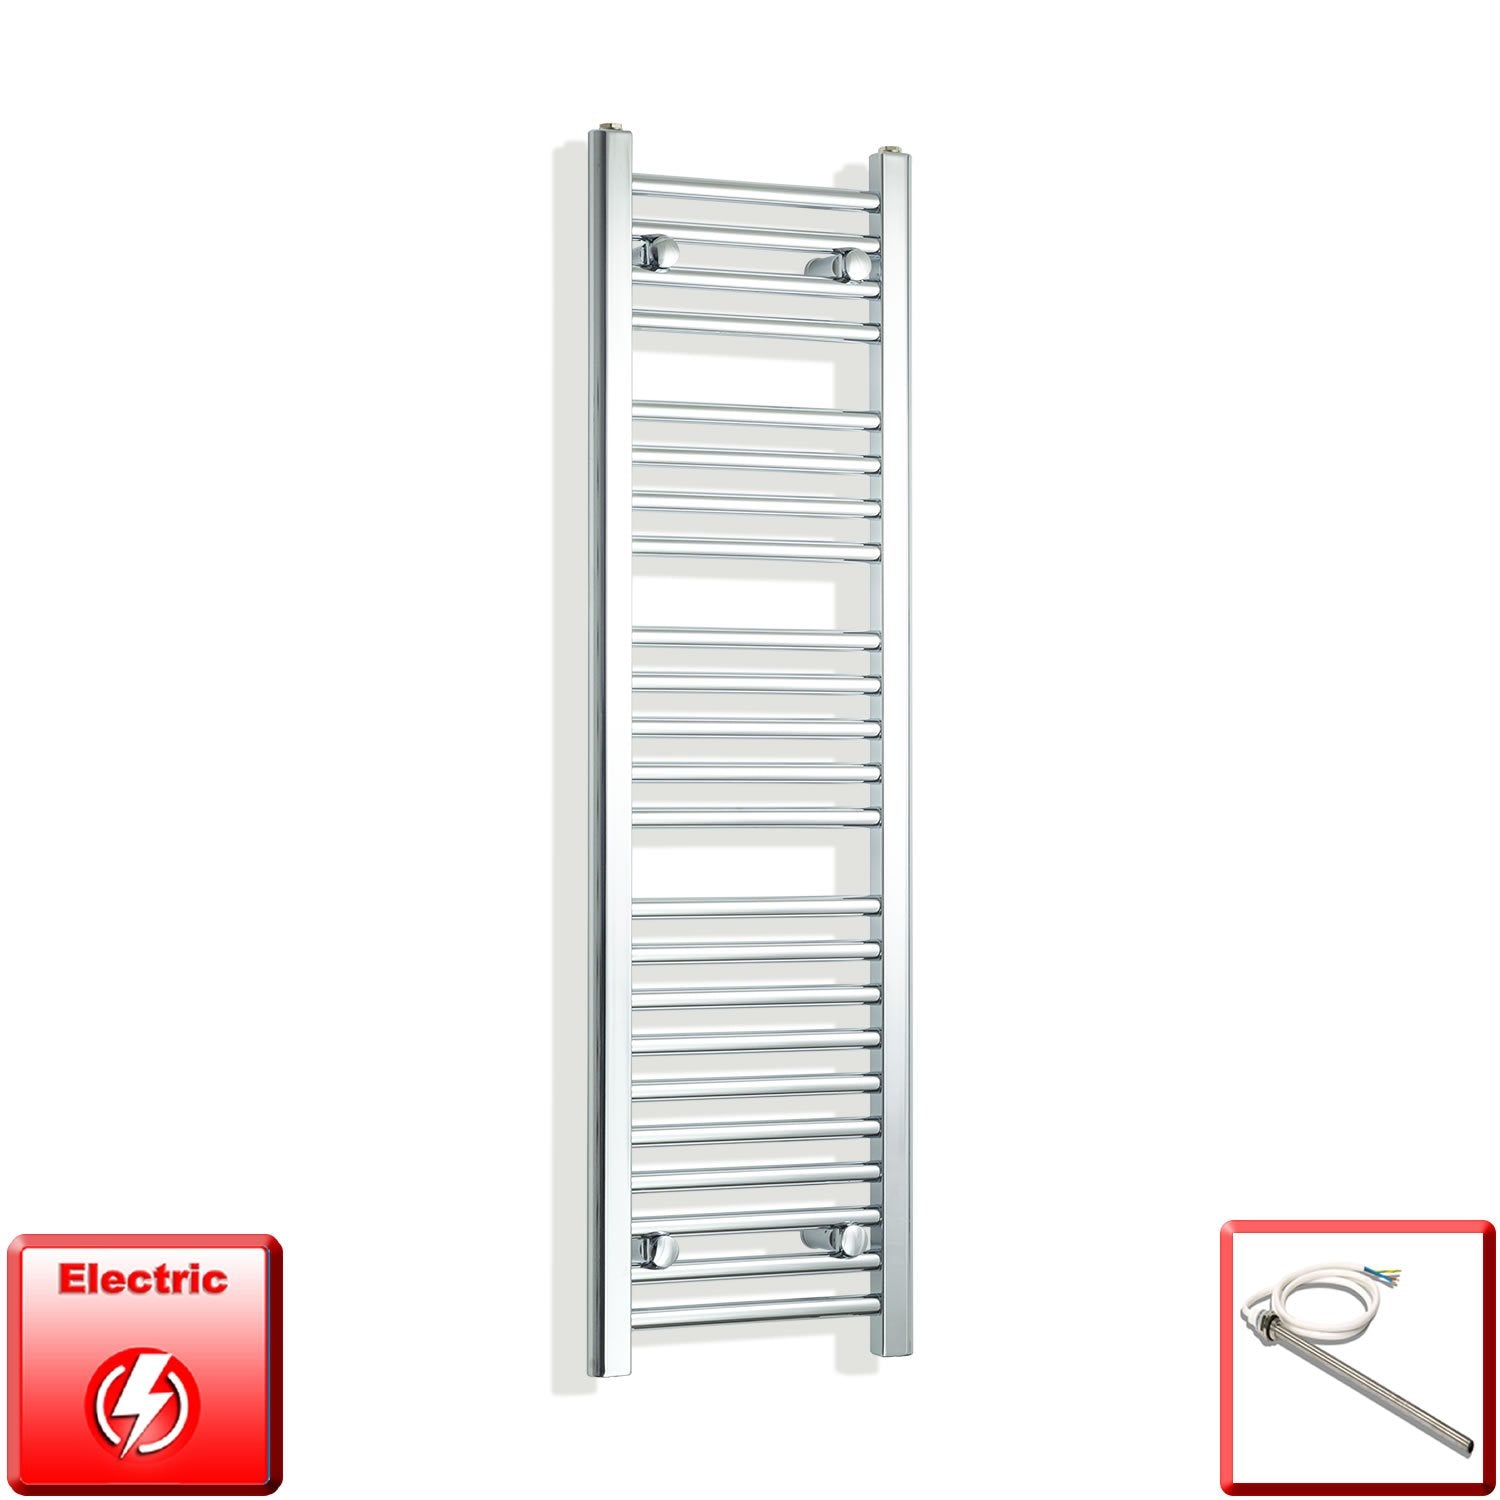 300mm Wide 1400mm High Flat Chrome Pre-Filled Electric Heated Towel Rail Radiator HTR,Single Heat Element